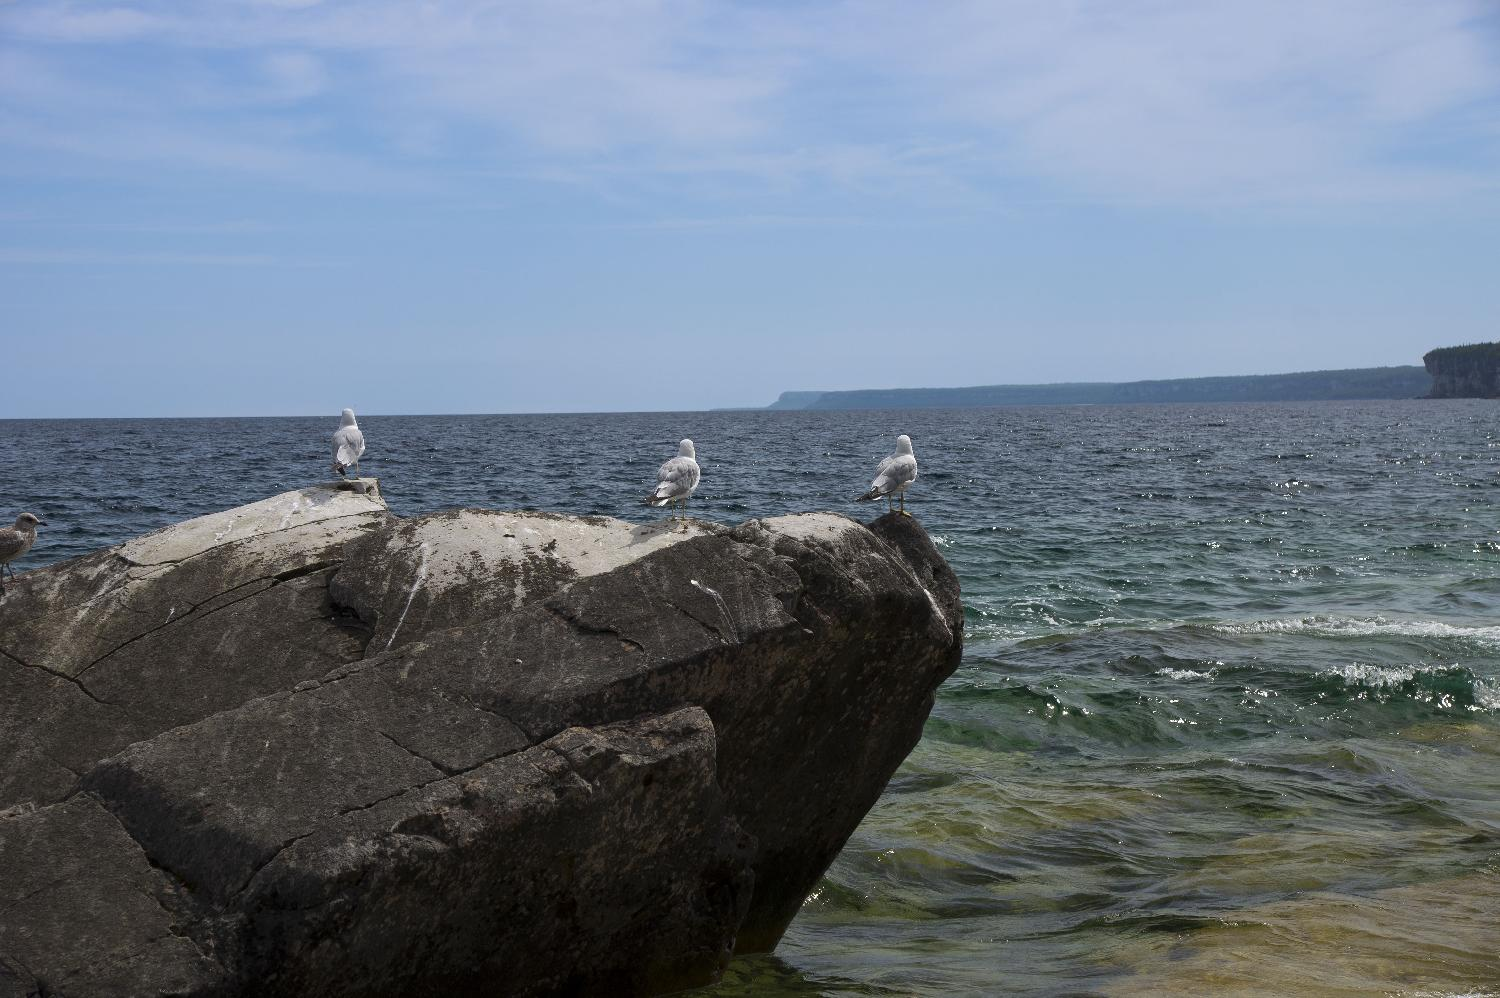 Seagulls are perched on a rock in Bruce Peninsula National Park.  Cabot Head can be seen in the background.